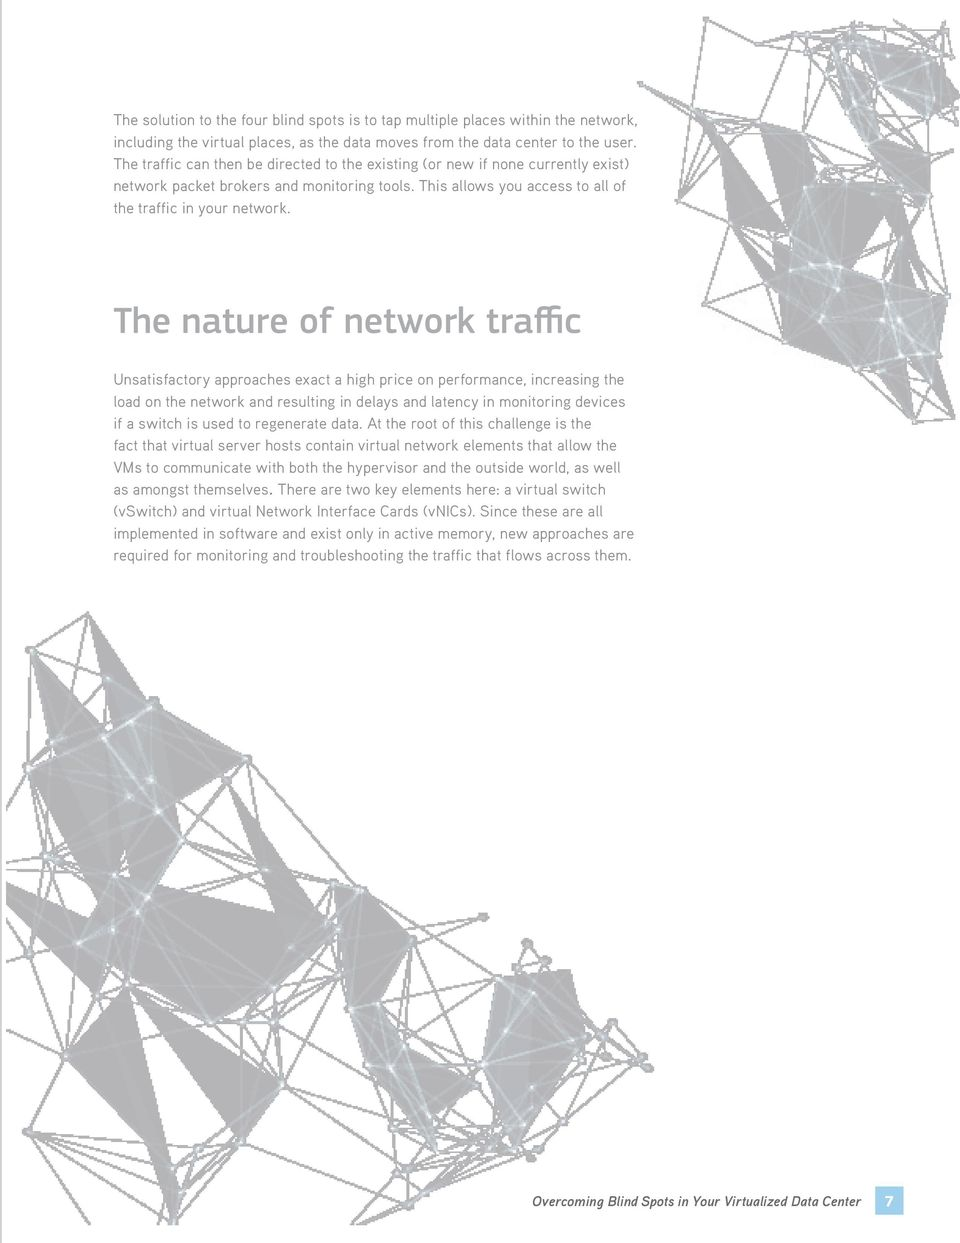 The nature of network traffic Unsatisfactory approaches exact a high price on performance, increasing the load on the network and resulting in delays and latency in monitoring devices if a switch is